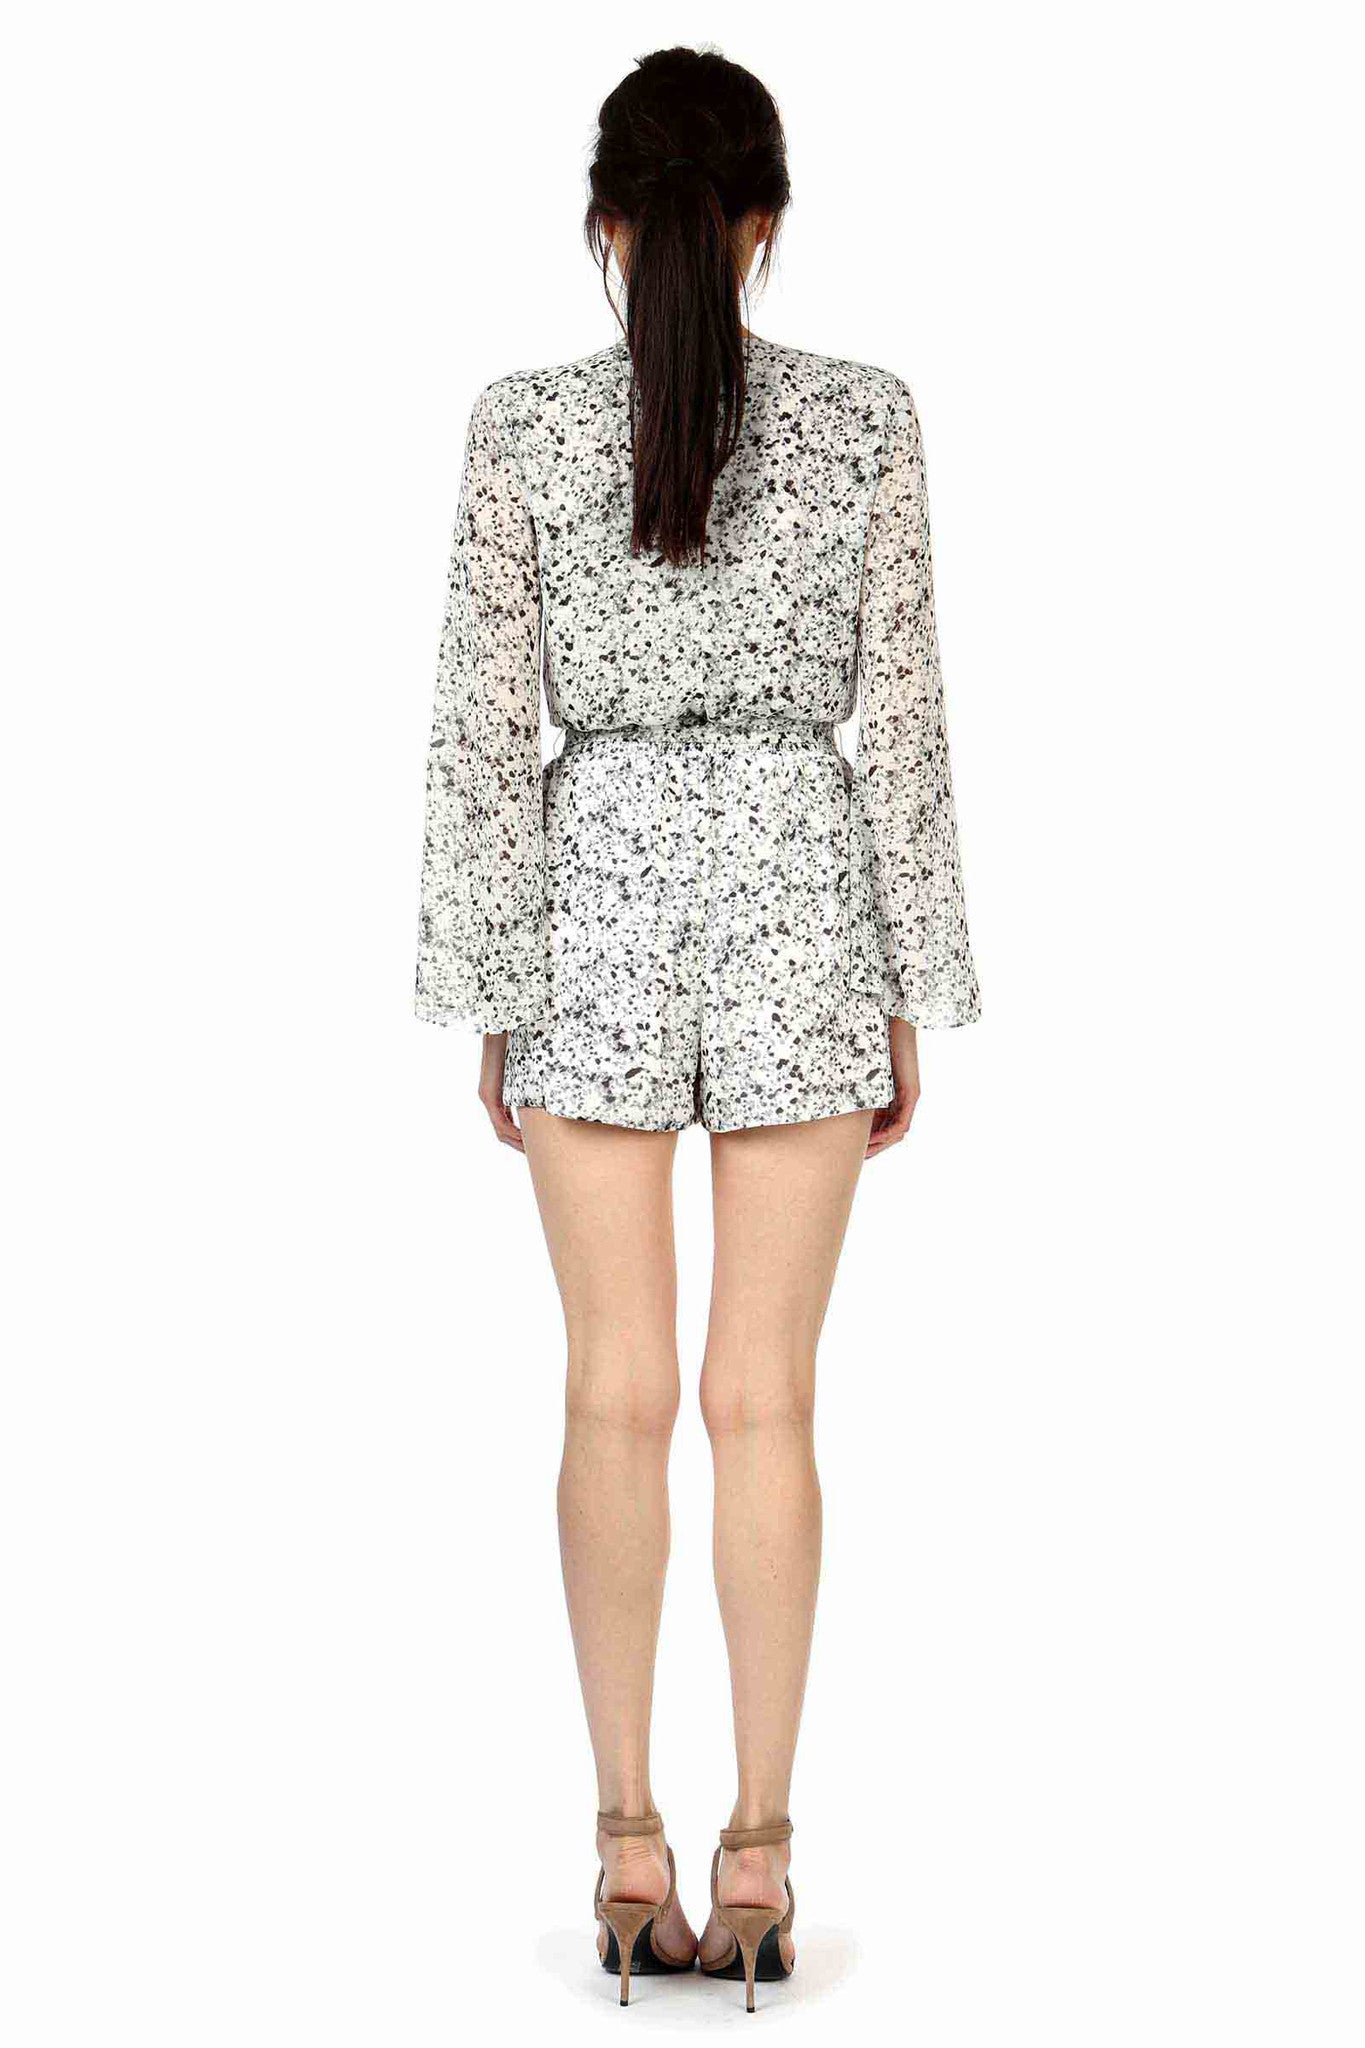 Jay Godfrey Black and White Printed Romper - Back View